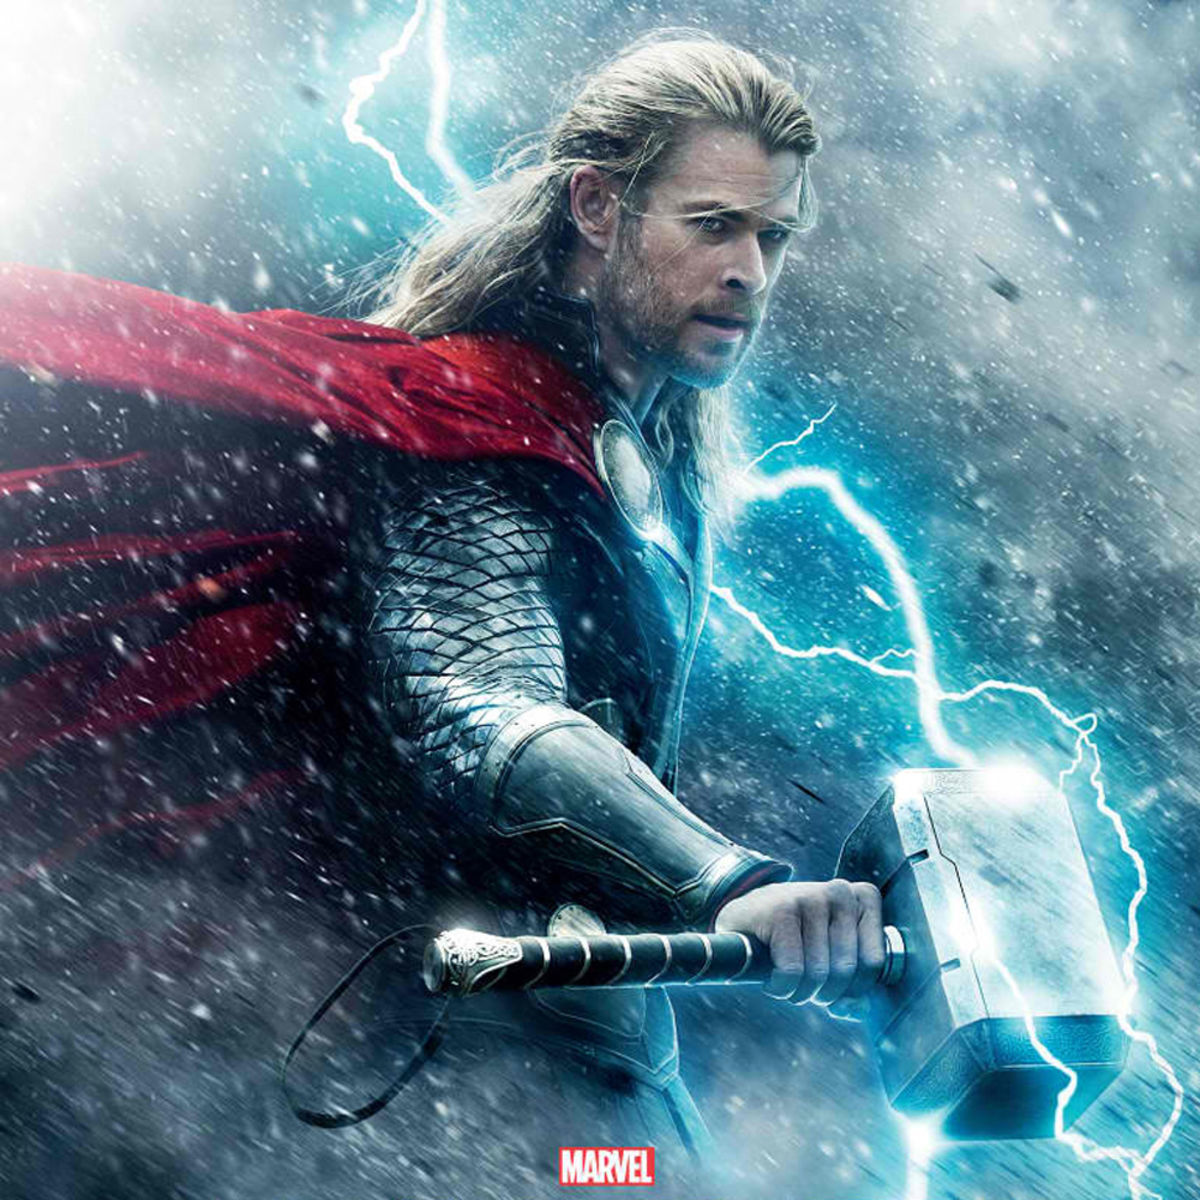 Thor-Chris-Hemsworth-Mjolnir-Marvel.jpg